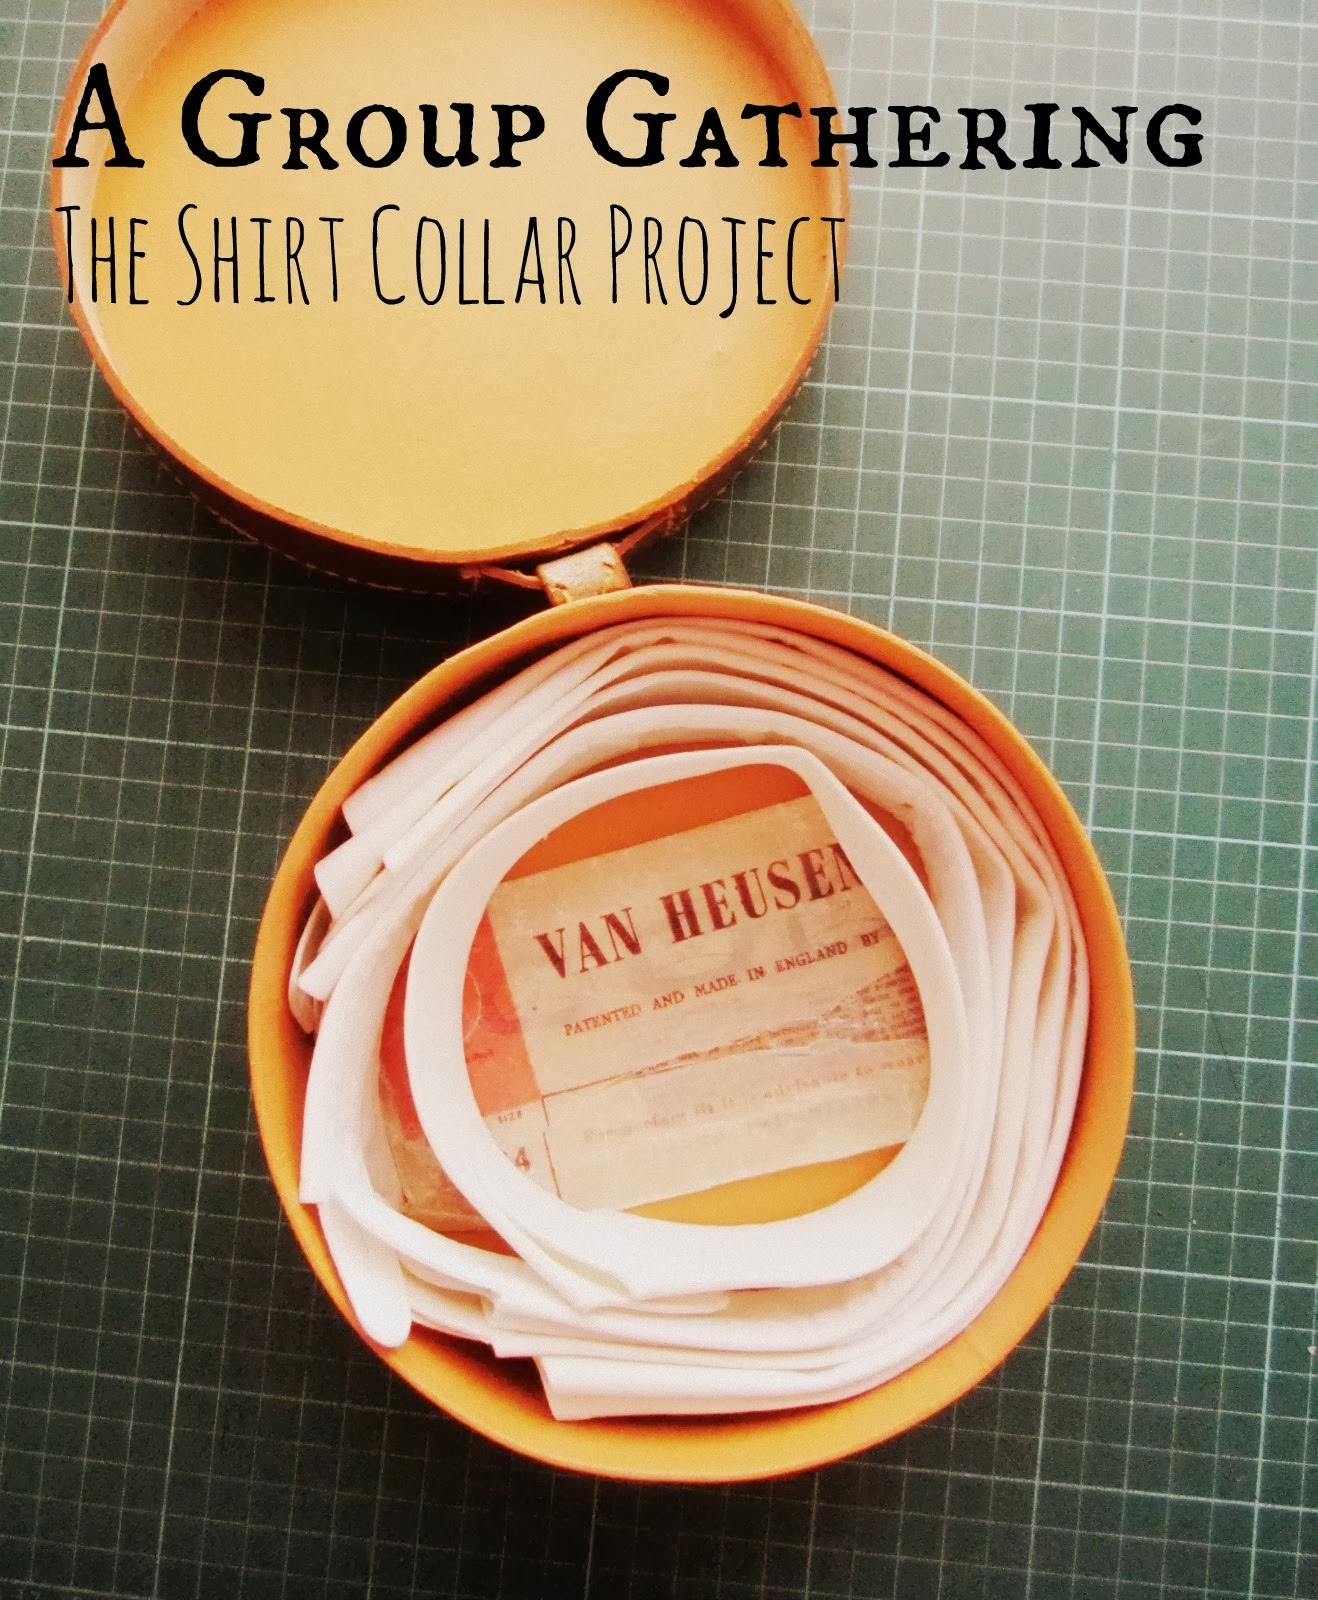 We're taking part in the Shirt Collar Project 2014